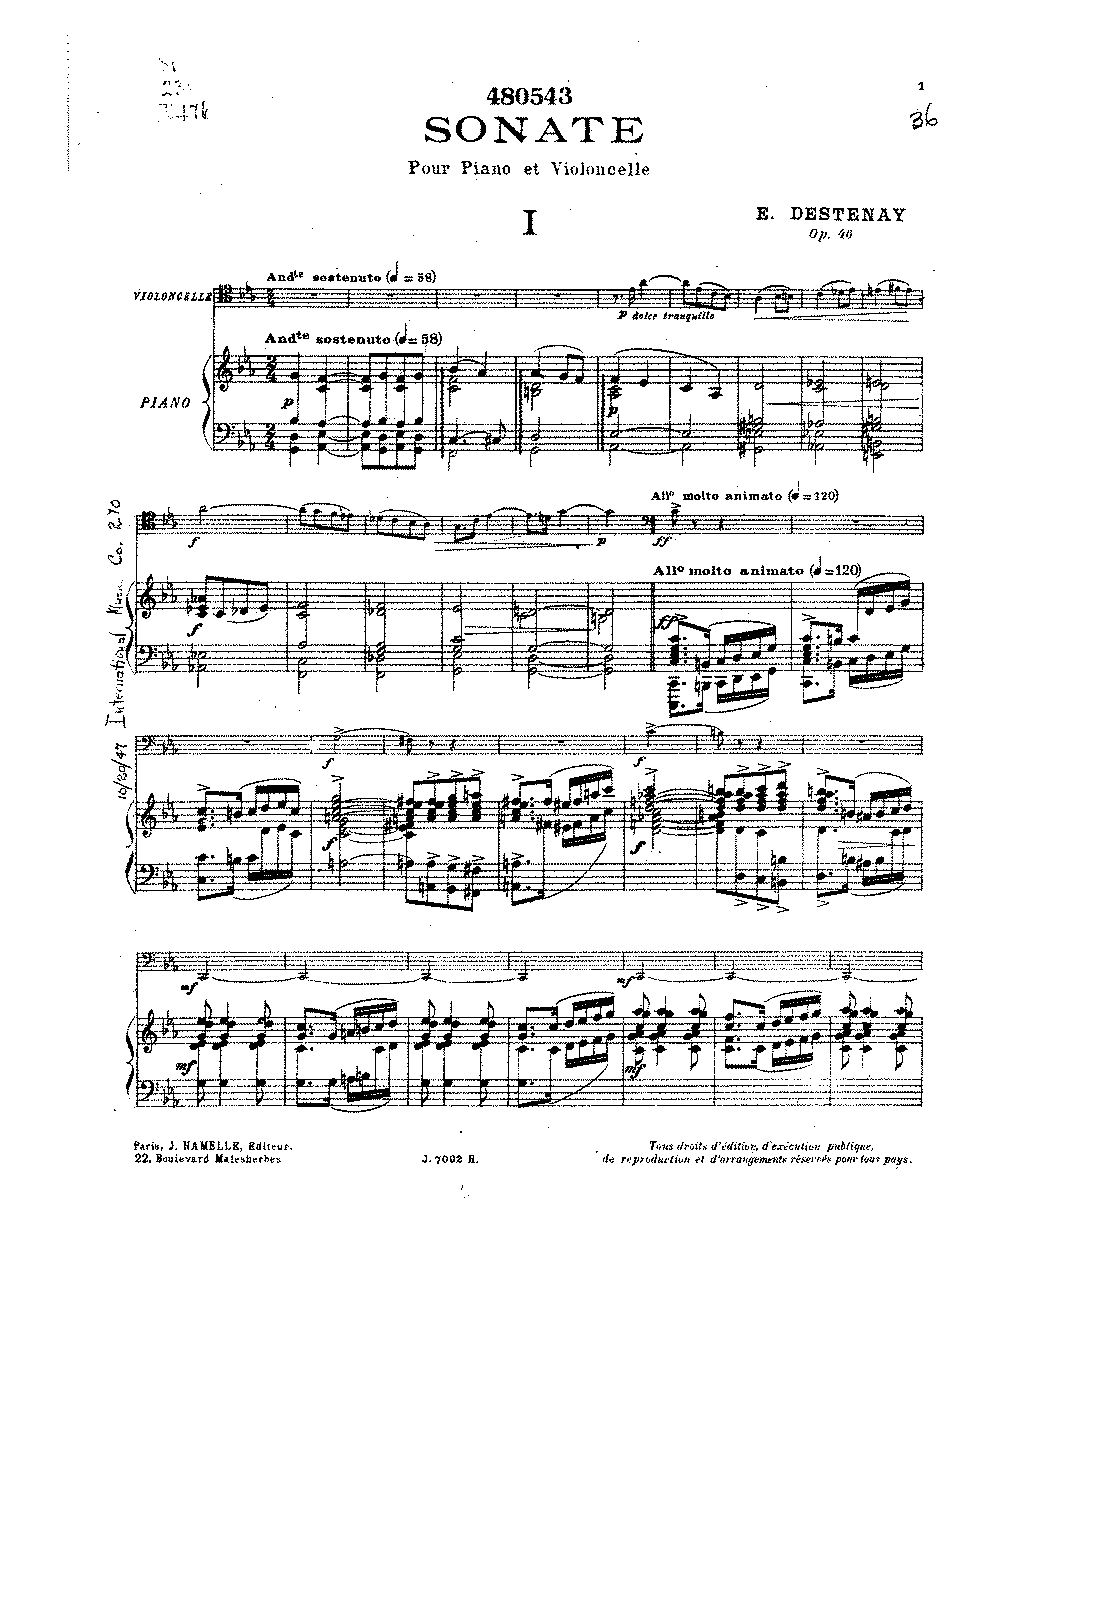 PMLP135015-Destenay - Sonata for Cello and Piano Op46 score.pdf